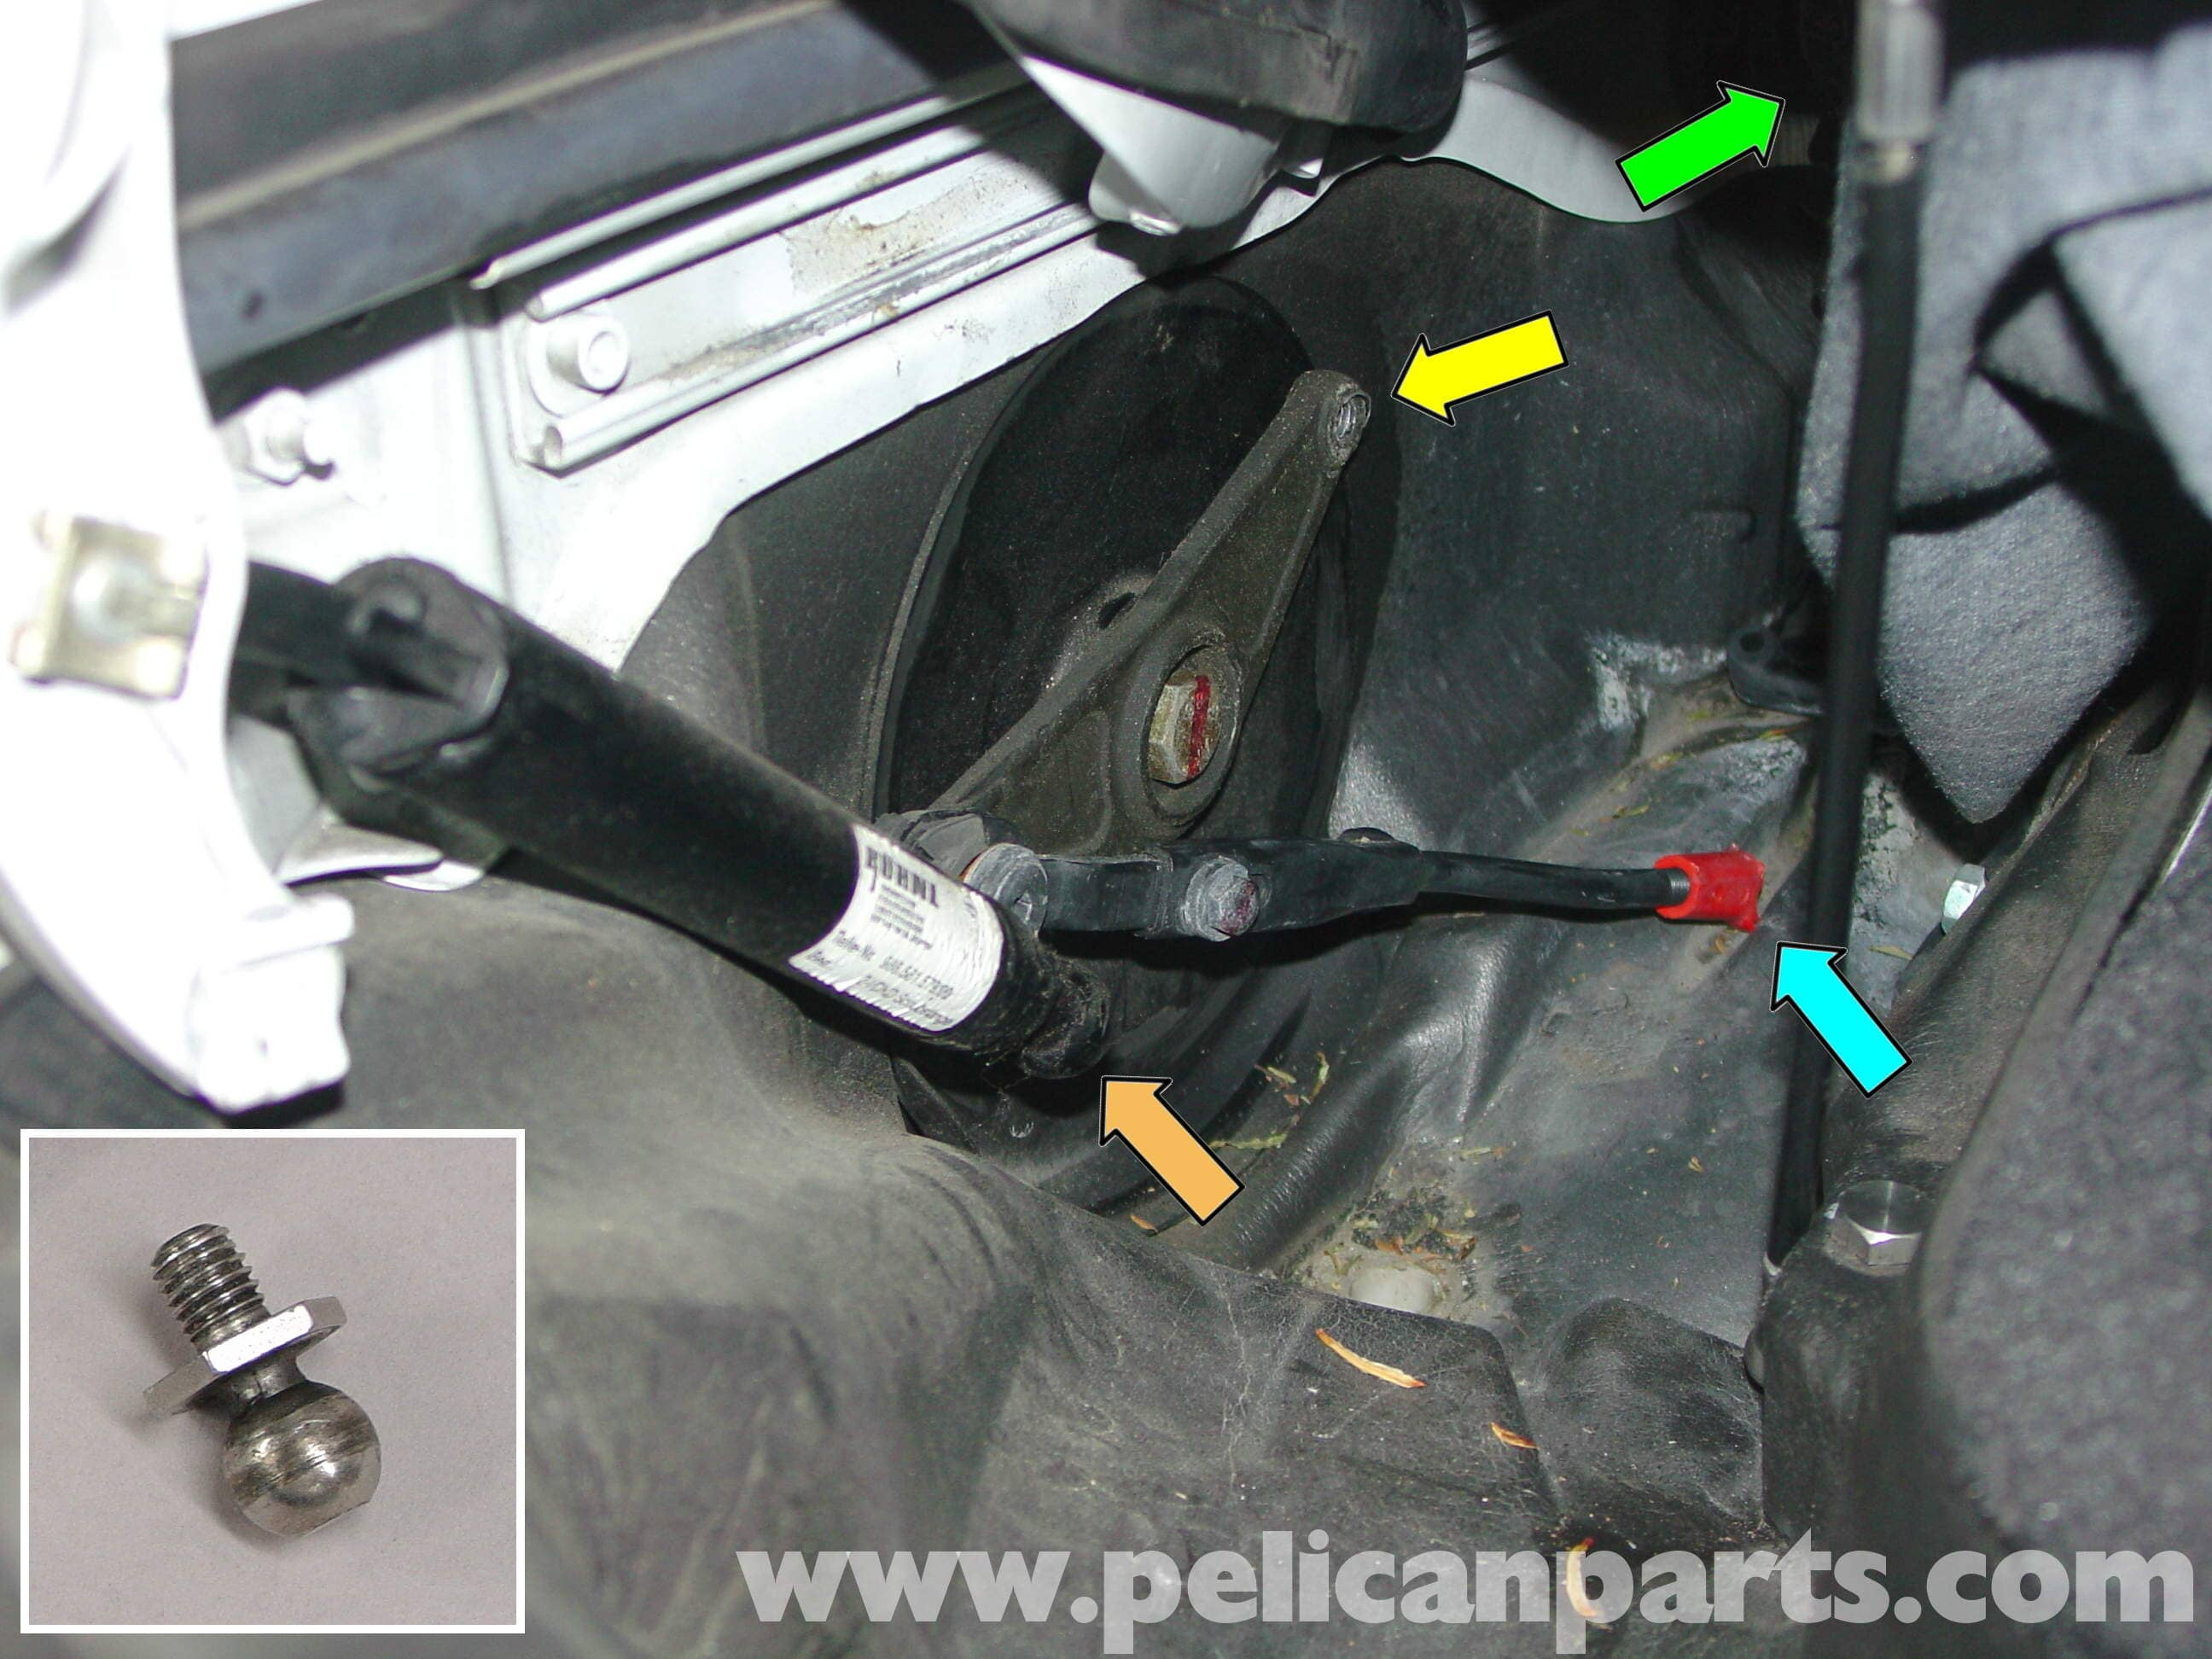 02 Cabrio Convertible Top Wiring Diagram Another Diagrams 1998 Vw Ac Porsche Boxster Repair 986 987 1997 08 Rh Pelicanparts Com Describe Motor Pump Operating